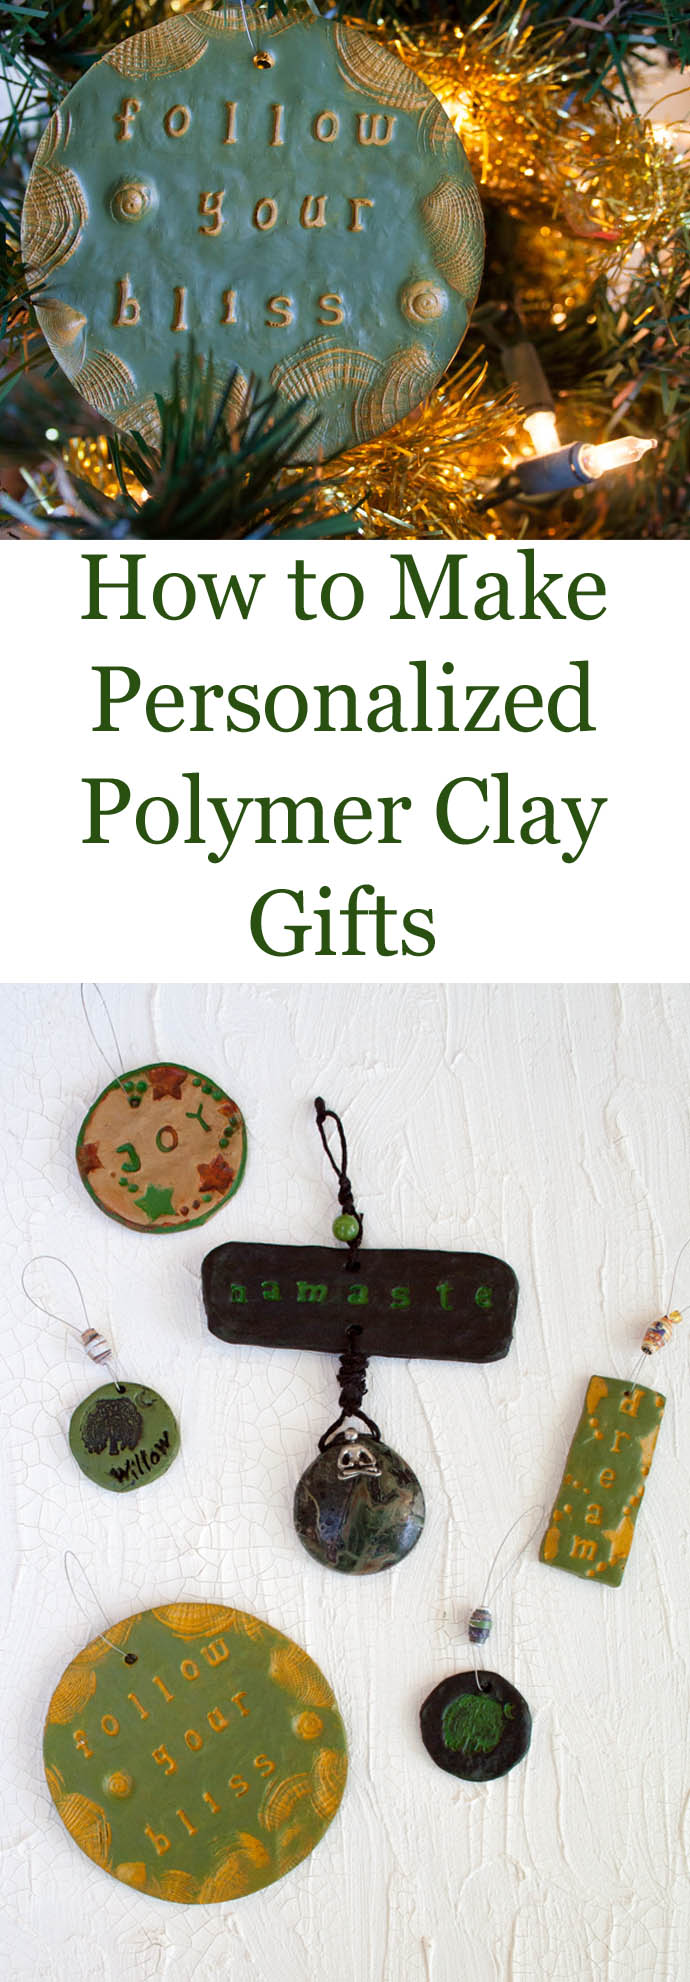 How to Make Personalized Polymer Clay Gifts - These easy DIY polymer clay gifts are something that anyone can make. You need very few materials to get you started.